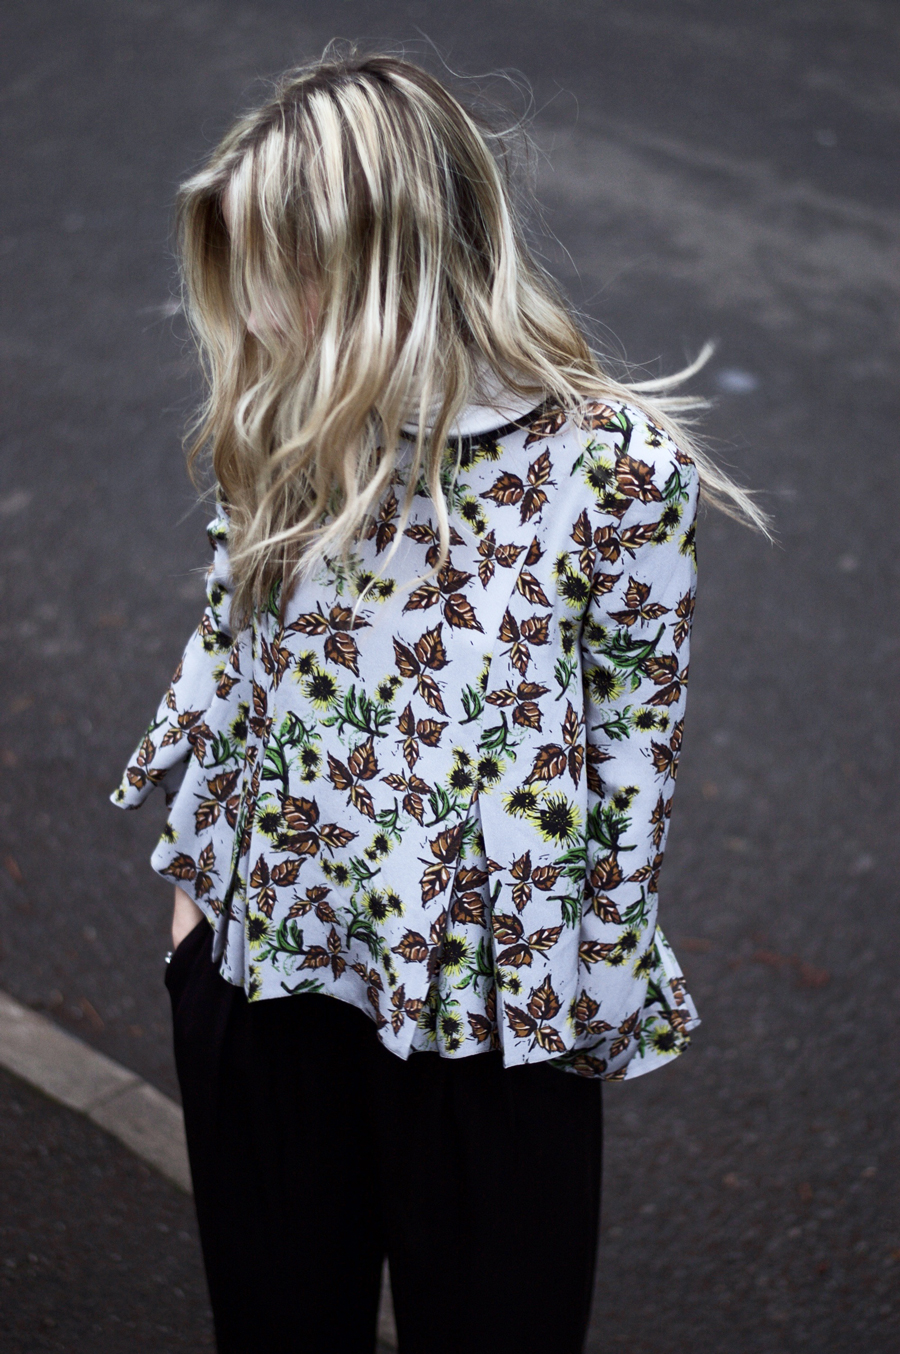 Topshop Boutique Floral Prints